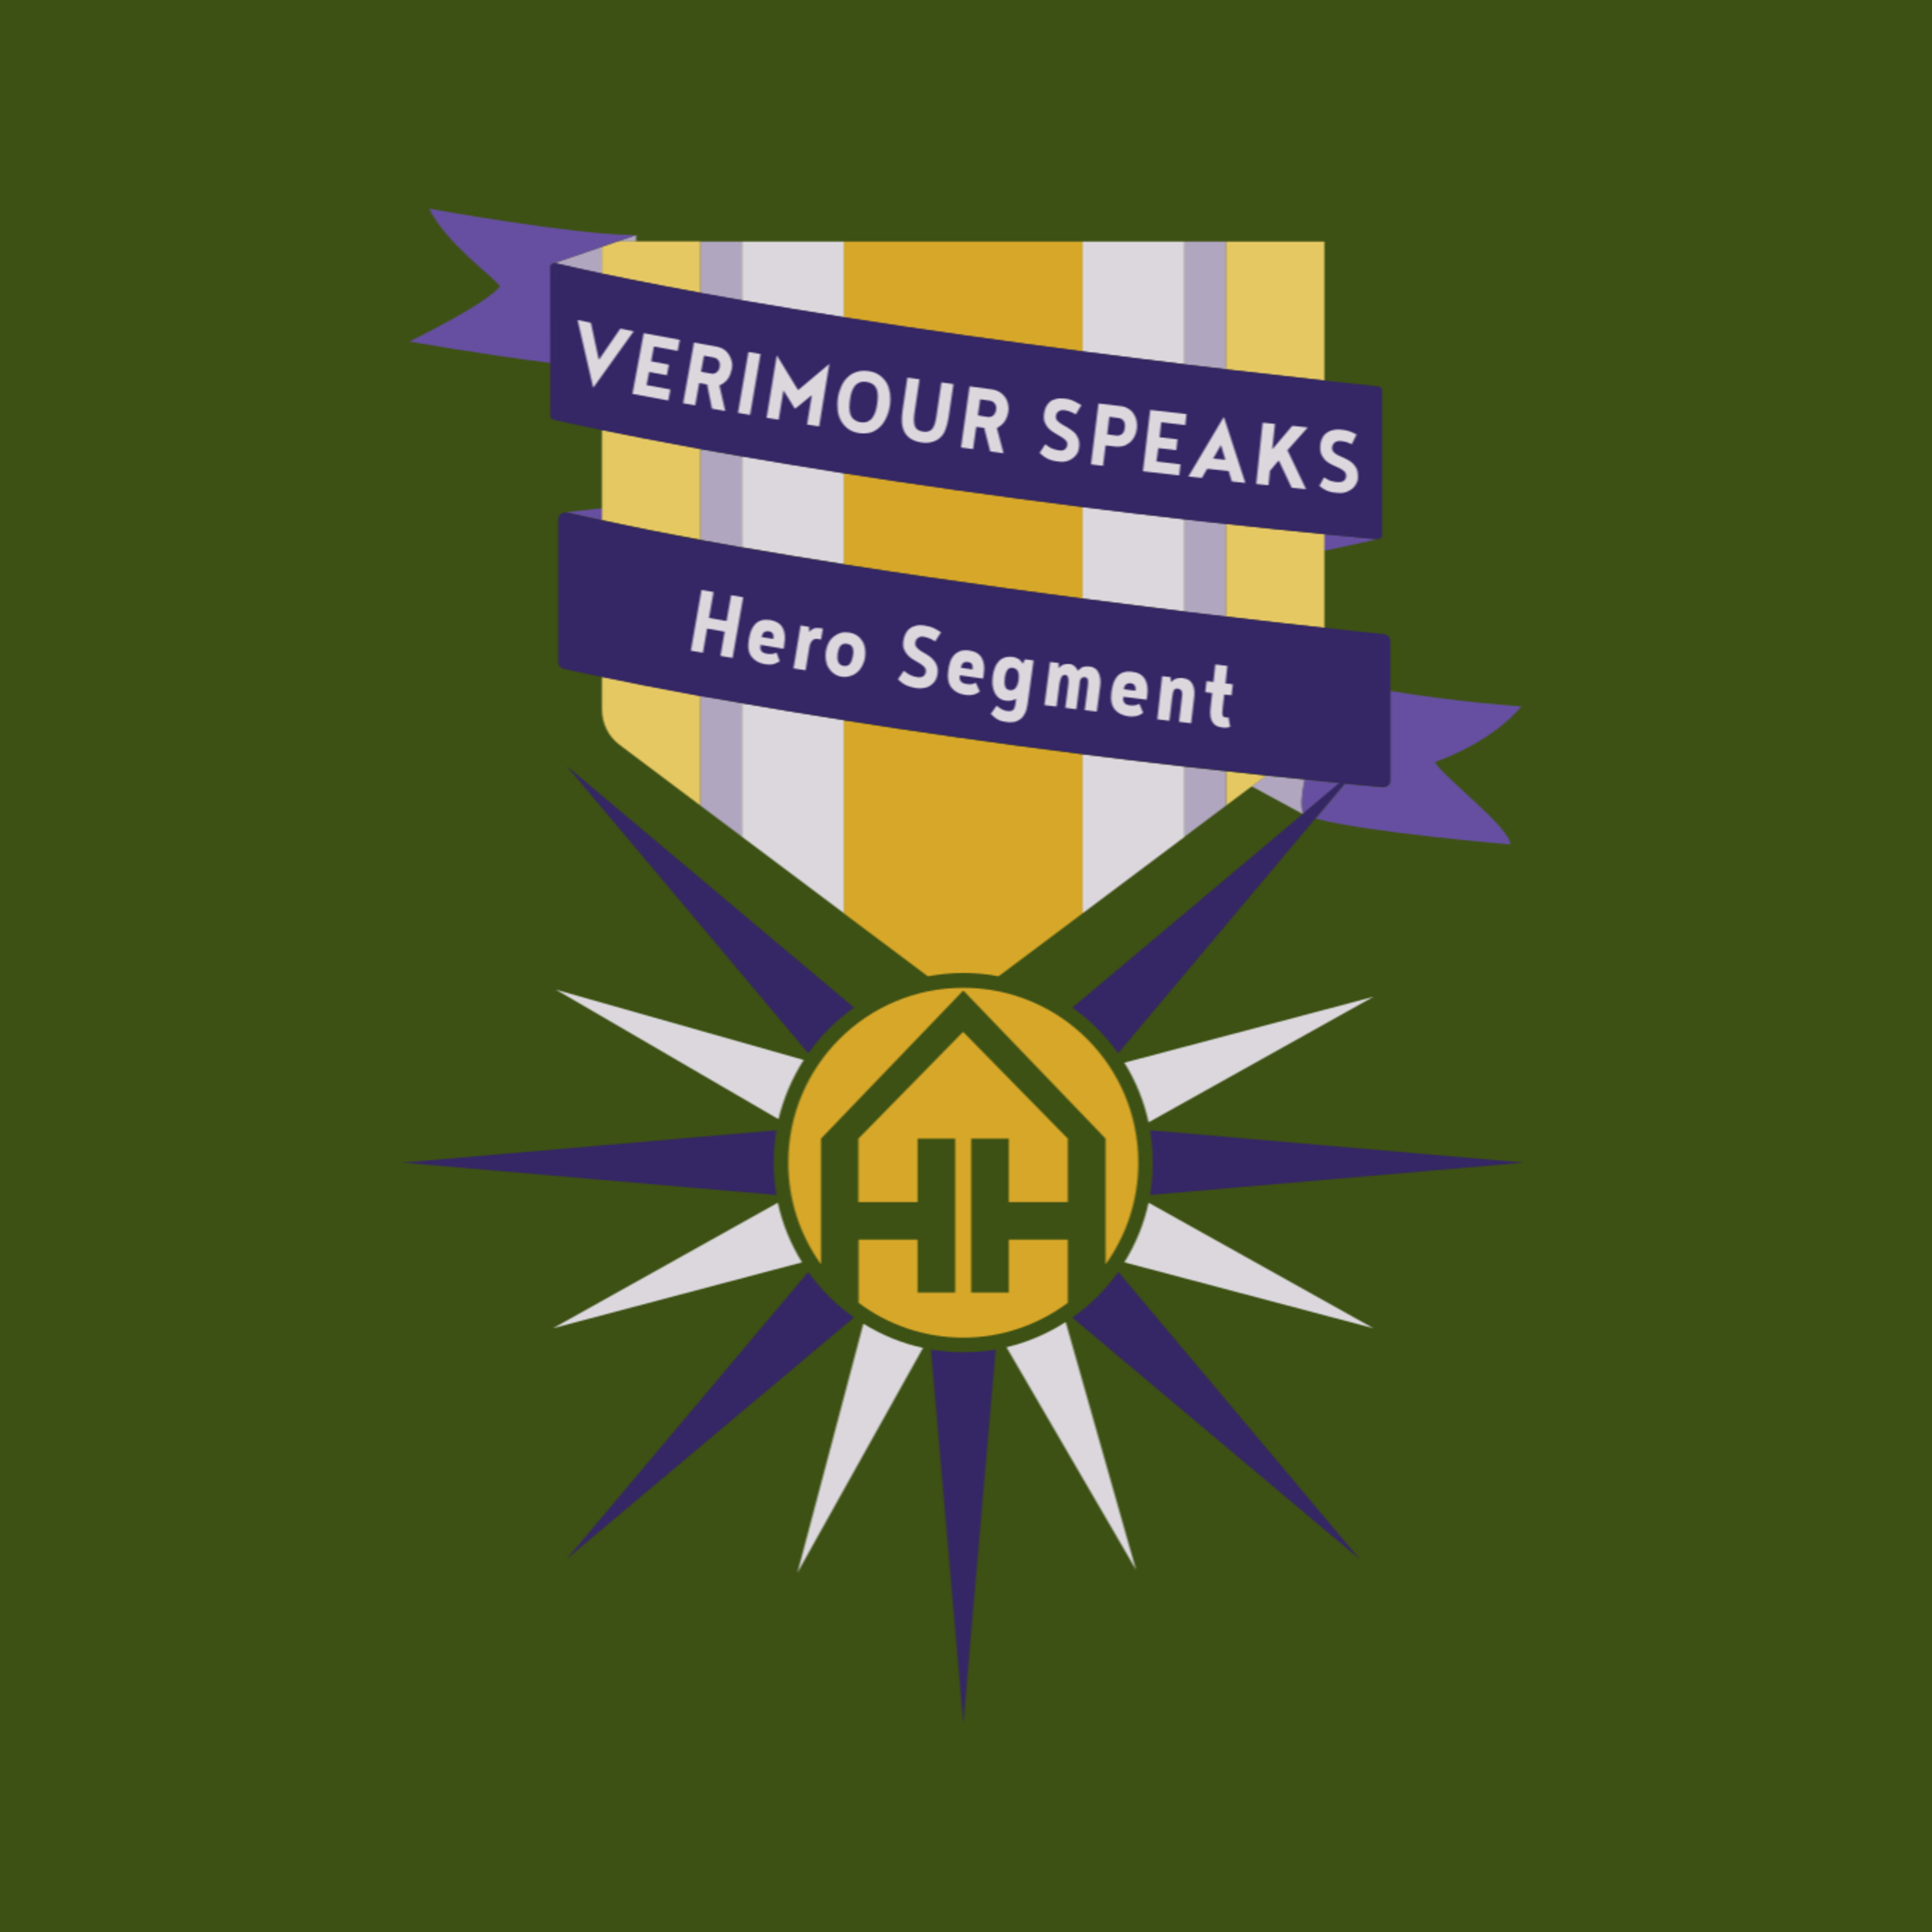 S02E51 - Hero Segment Marine Veteran Frank Manteau Founder of Kamikaze Wood Werks and Crayons Ready to Eat Part Two